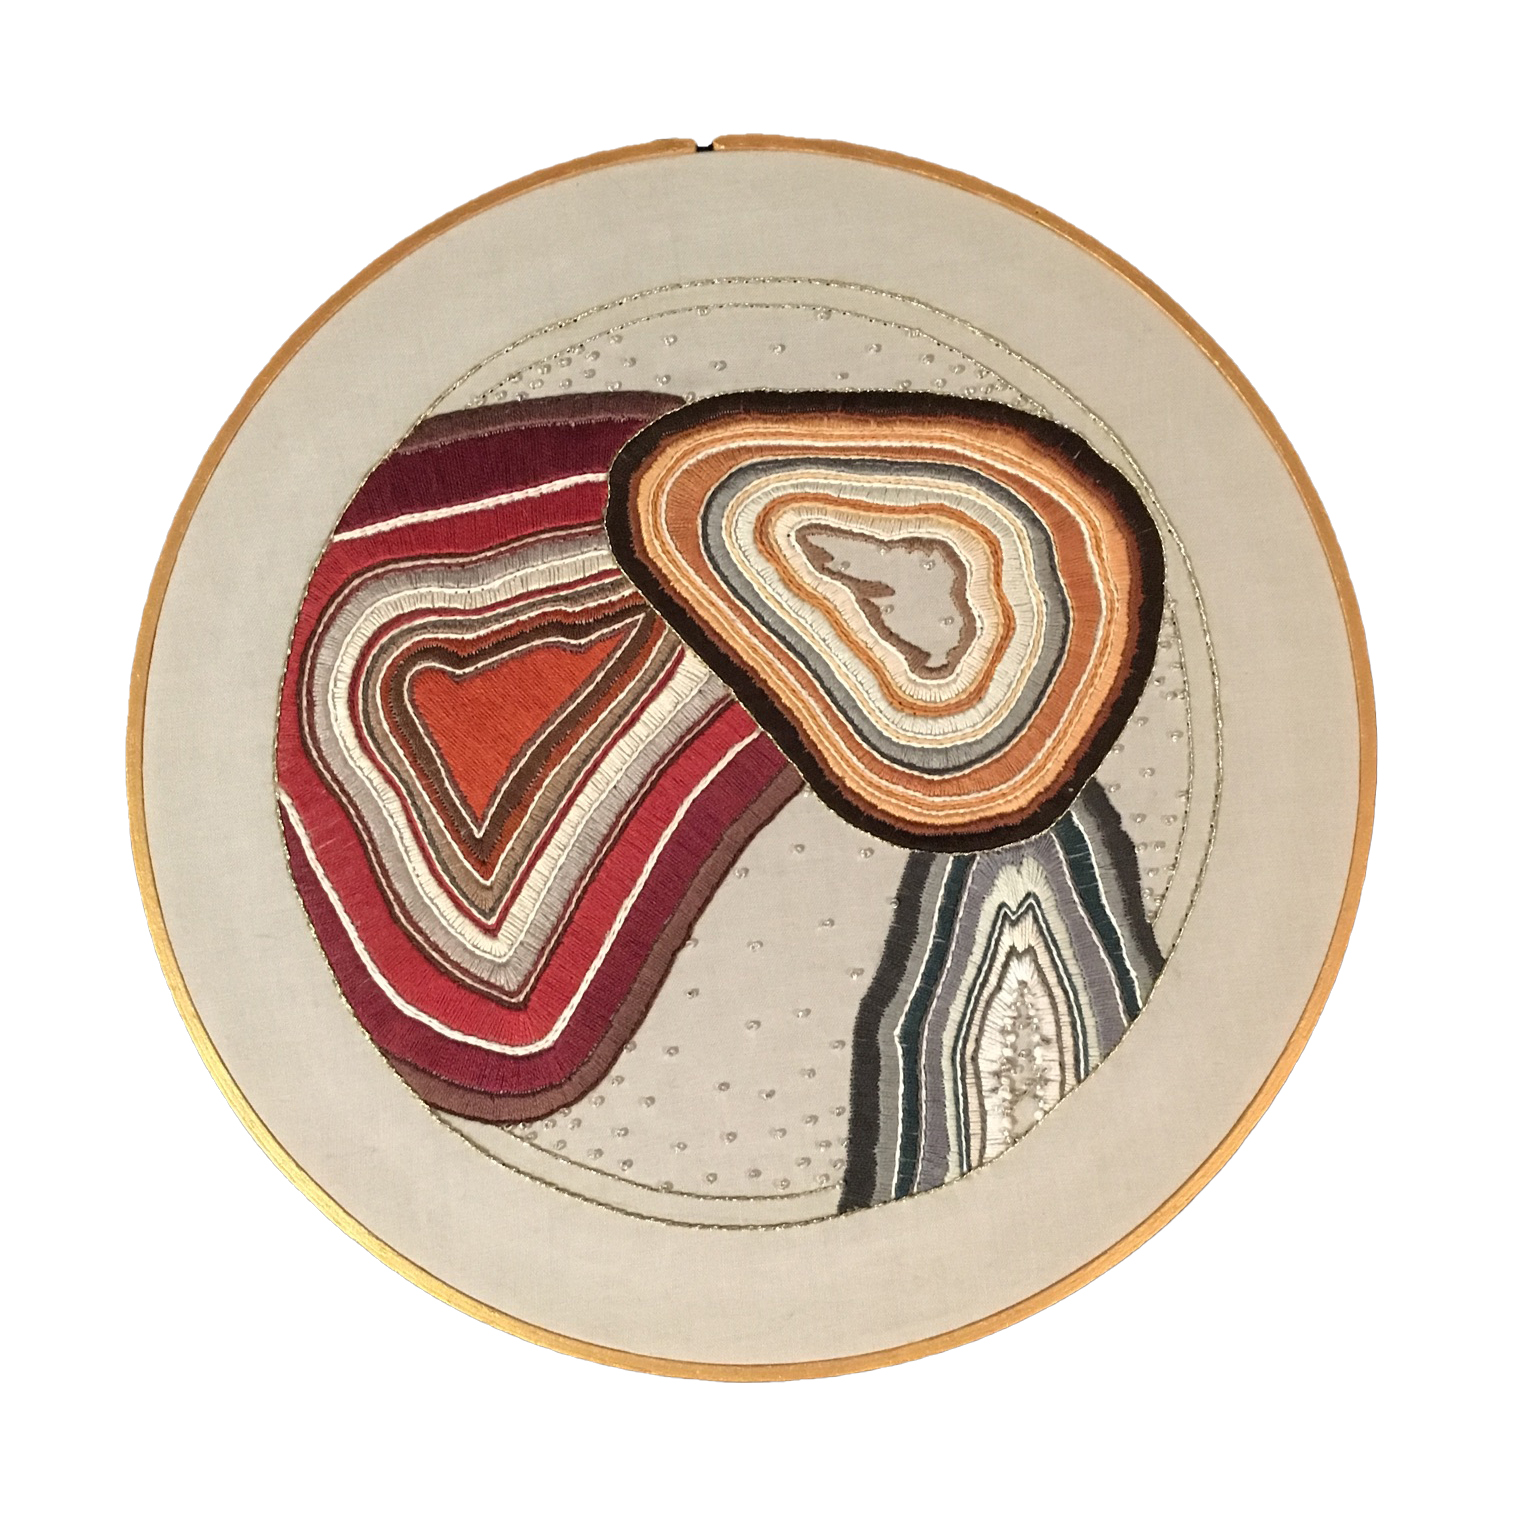 Three agates overlapping each other